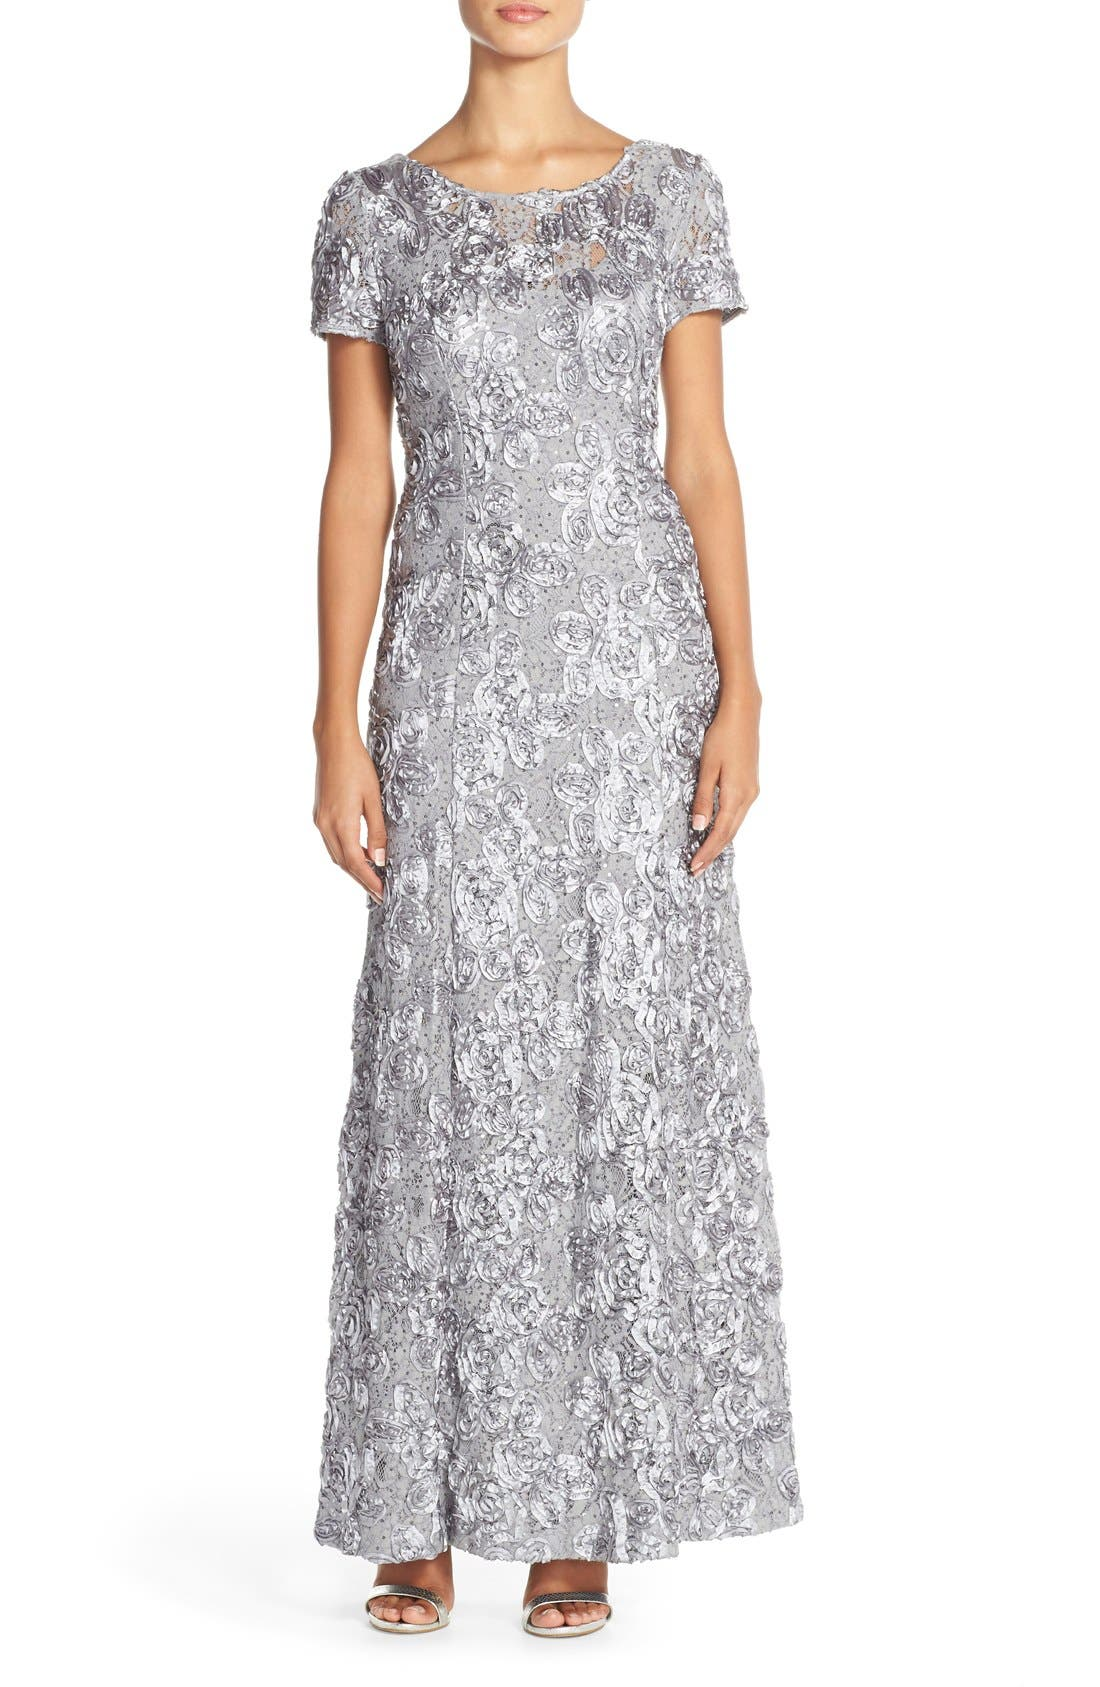 Scattered sequins sparkle among the soutache rosettes and stunning lace of this graceful gown that\\\'s ready for weddings and other special occasions. Style Name: Alex Evenings Embellished Lace A-Line Gown. Style Number: 1005168. Available in stores.